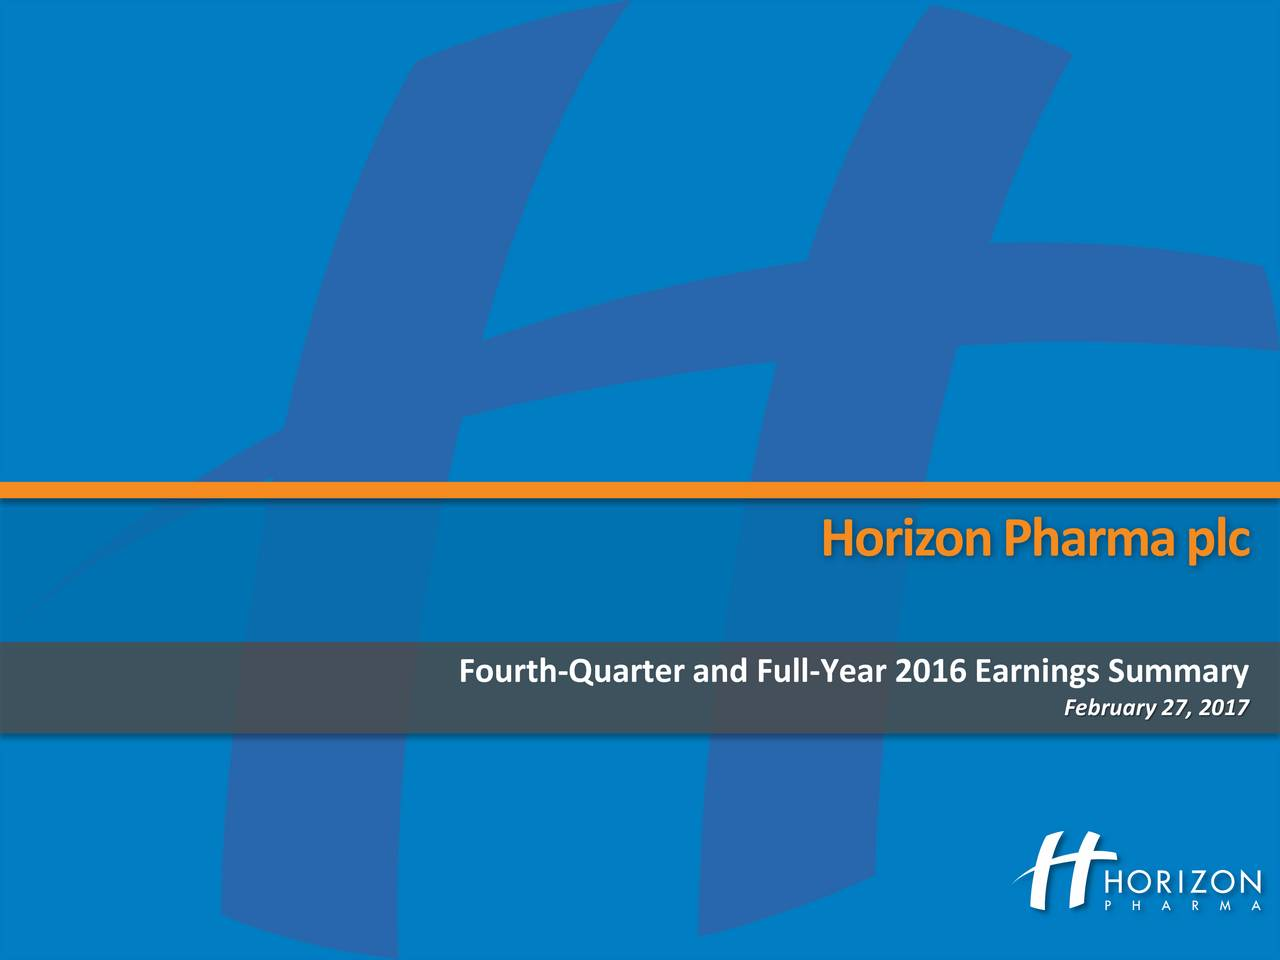 Fourth-Quarter and Full-Year 2016 Earnings Summary February27, 2017